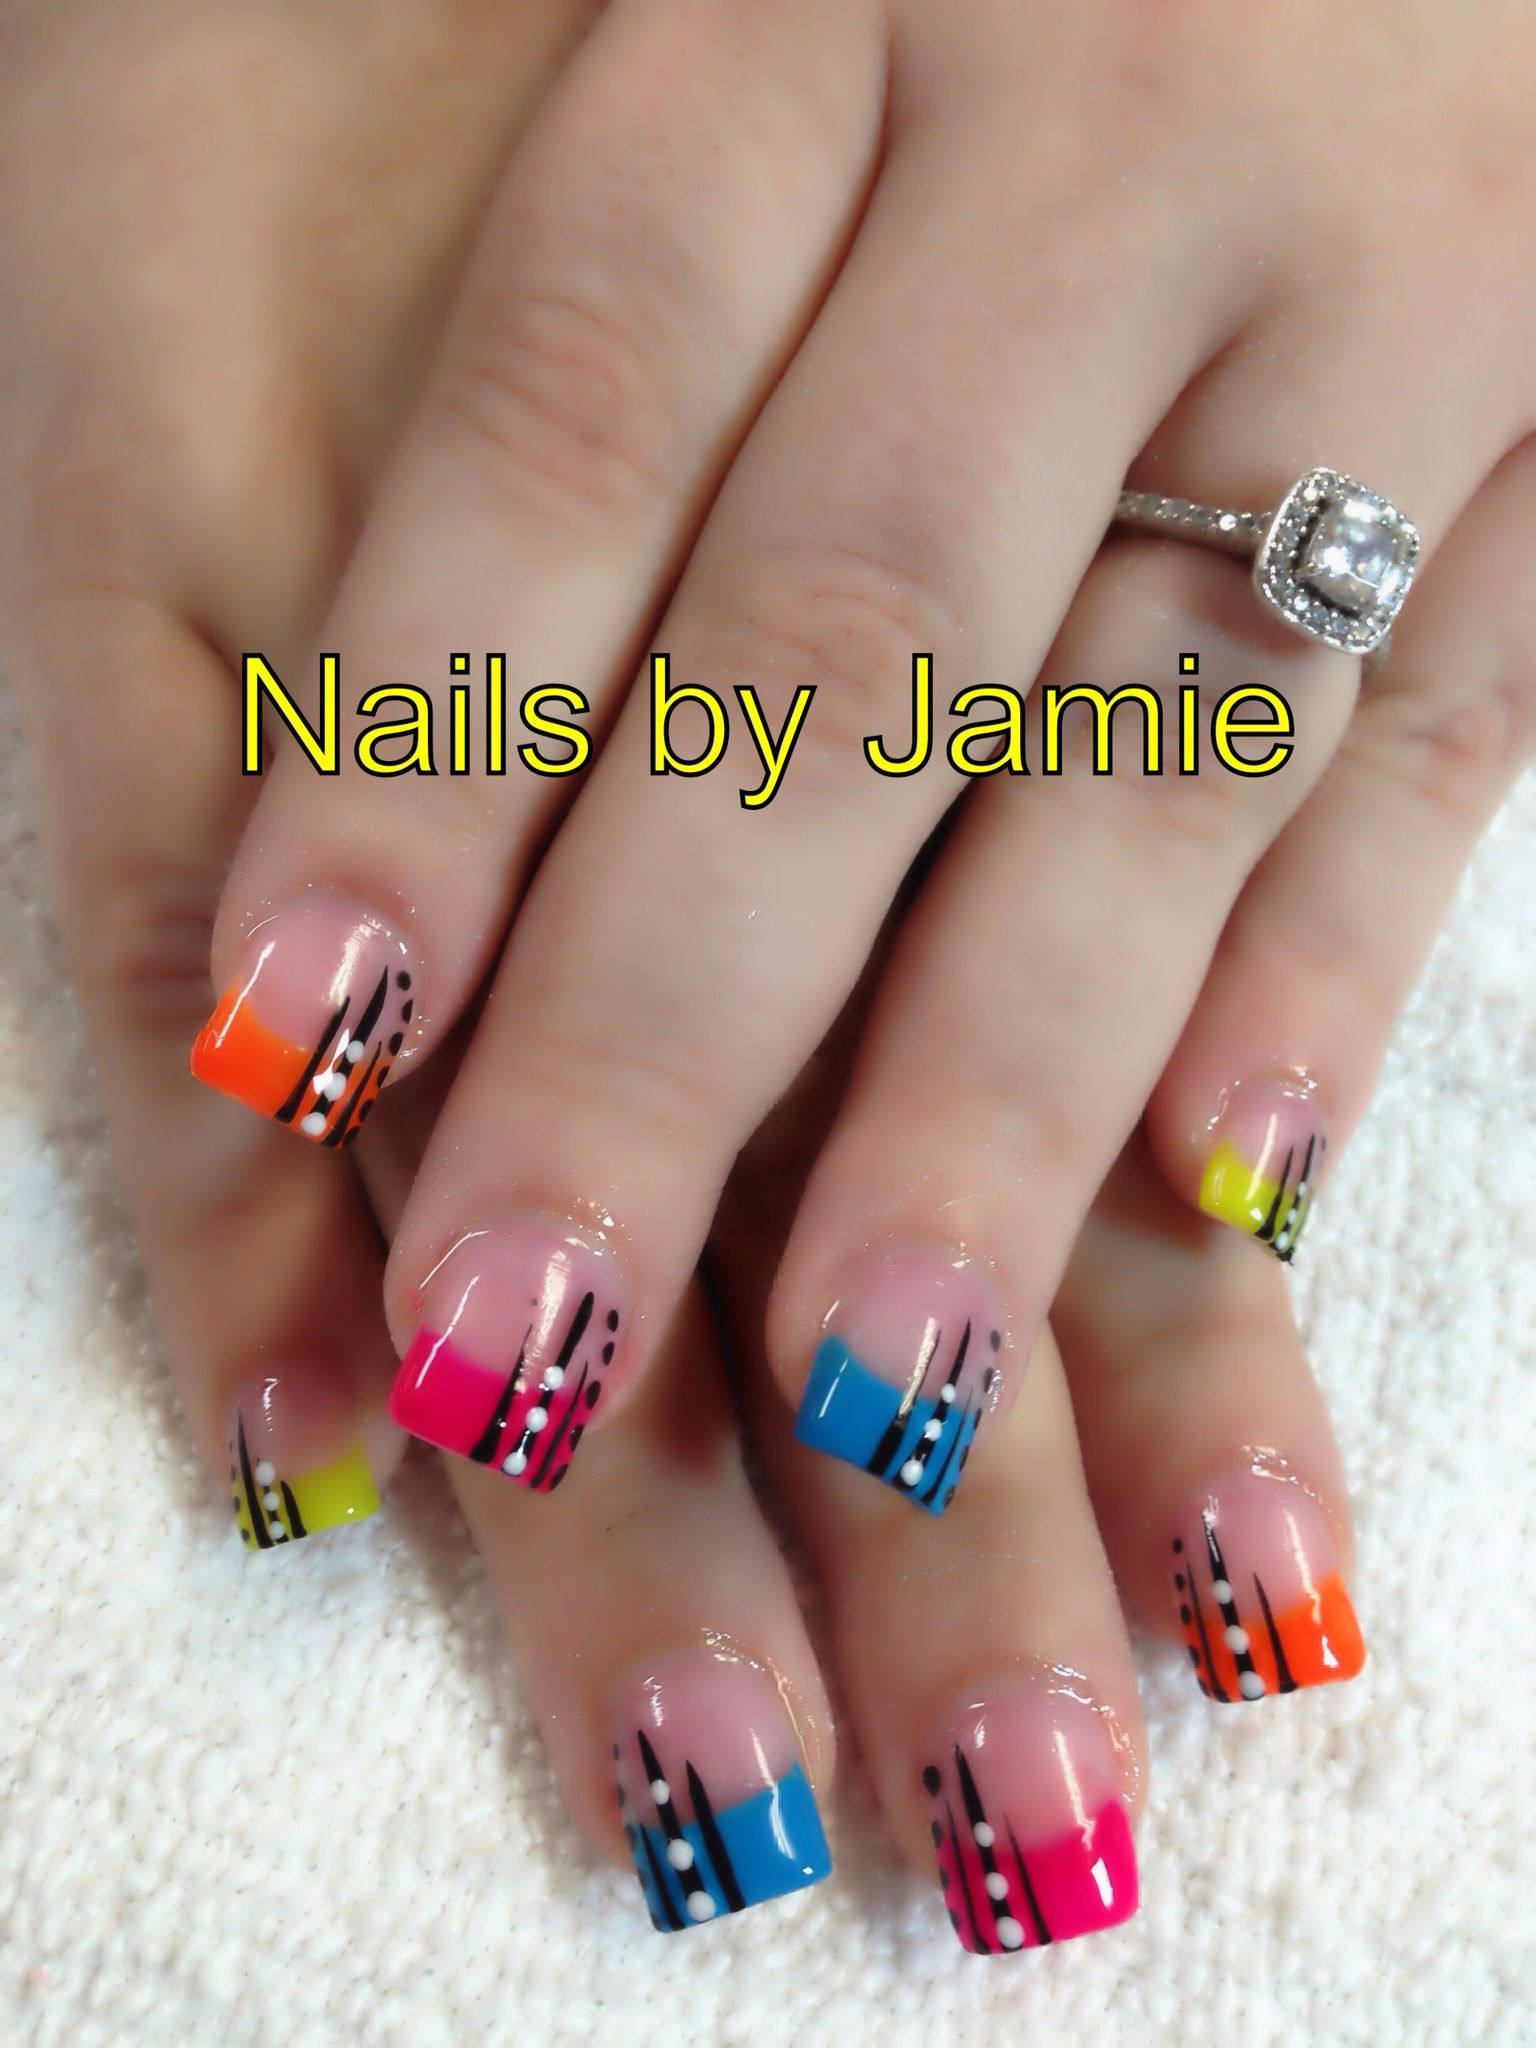 Follow Nails by Jamie on Instagram! NailPro97401 | Nails by Jamie ...